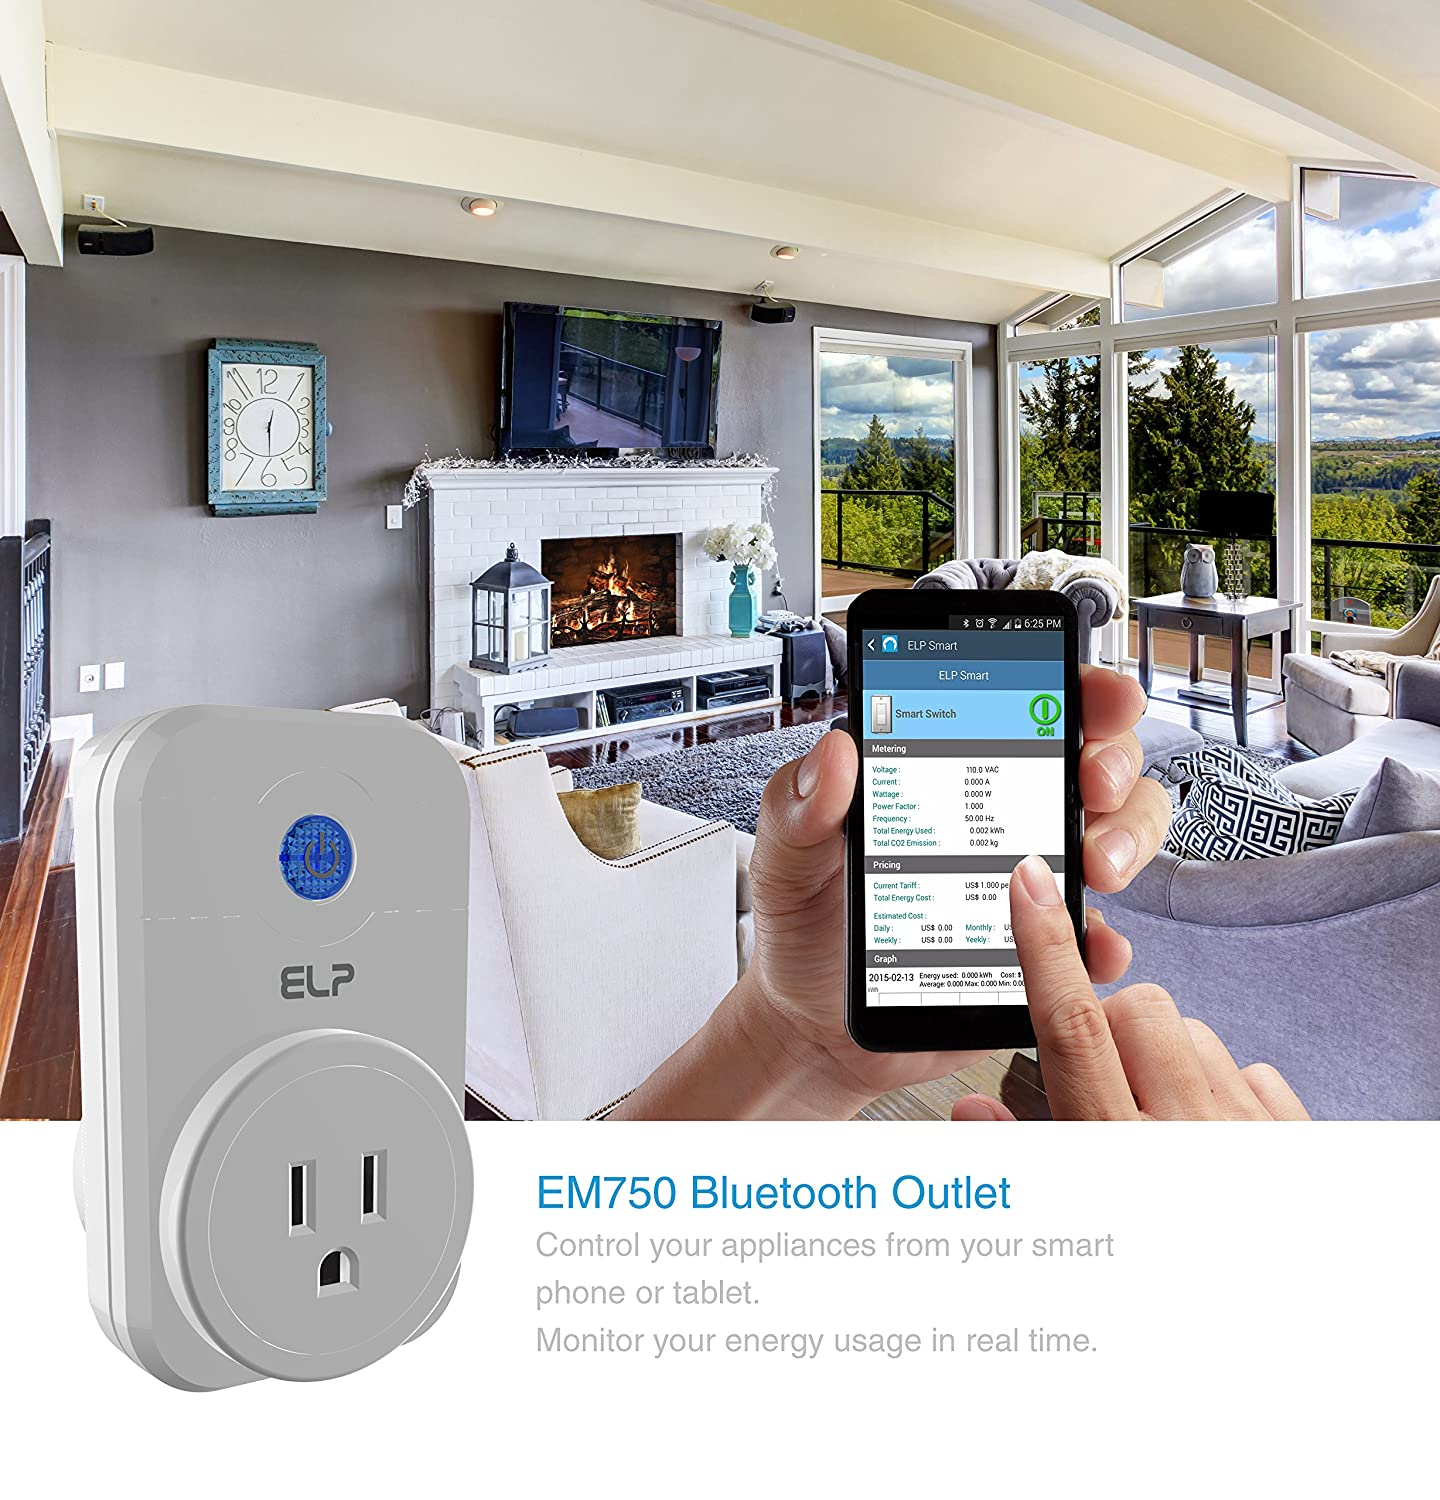 bluetooth 4 0 smart outlet with energy meter and home automation